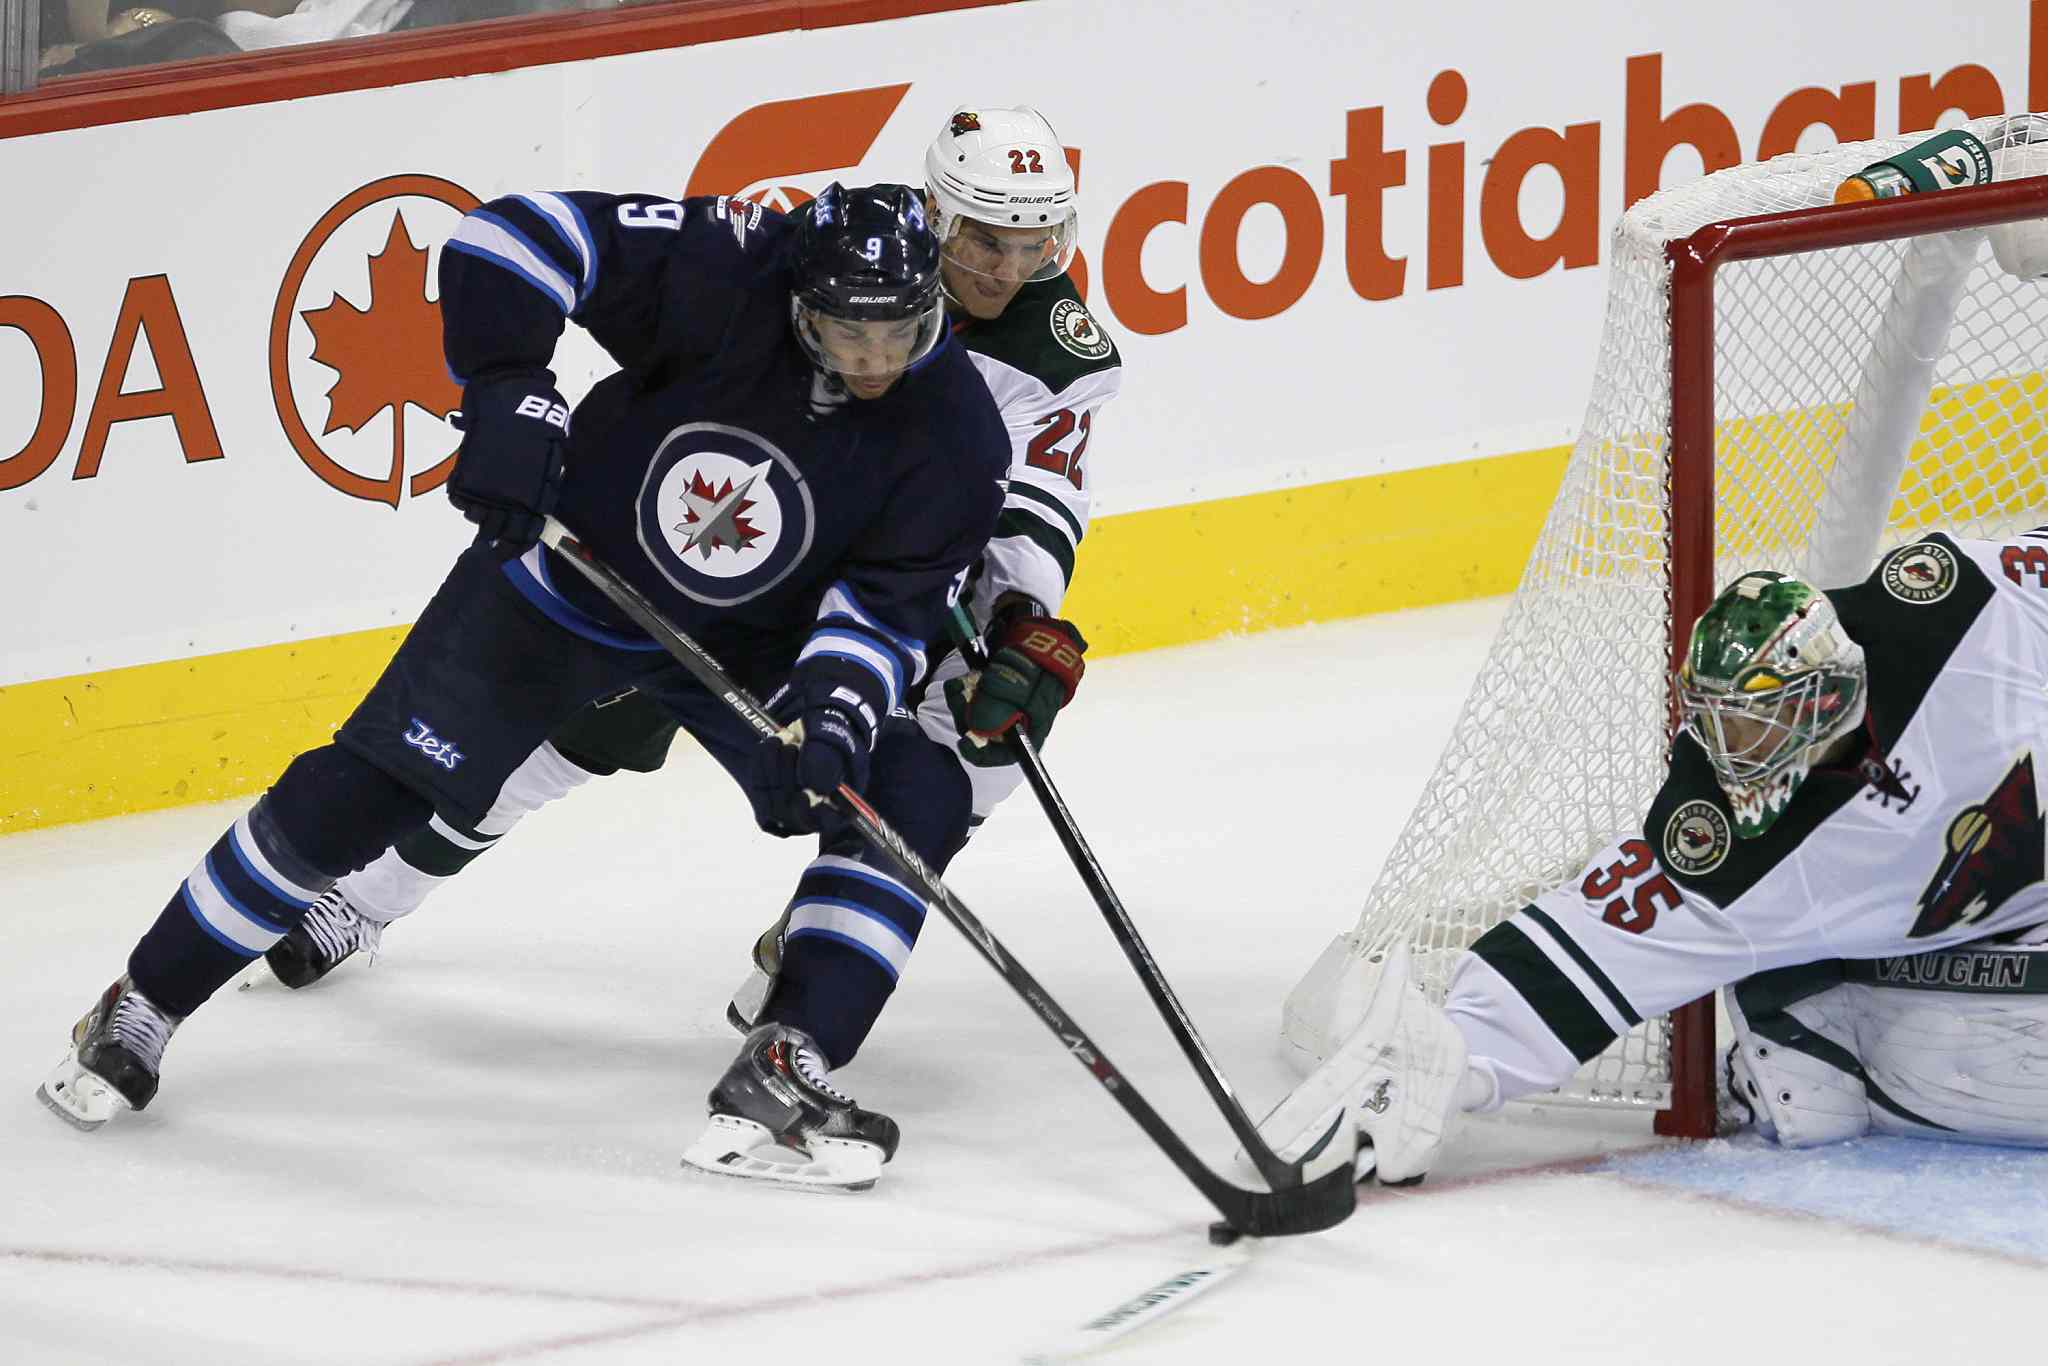 Minnesota Wild's Nino Niederreiter (22) and goaltender Darcy Kuemper (35) shut down Winnipeg Jets' Evander Kane (9) as he tries a wrap-around during the third period.